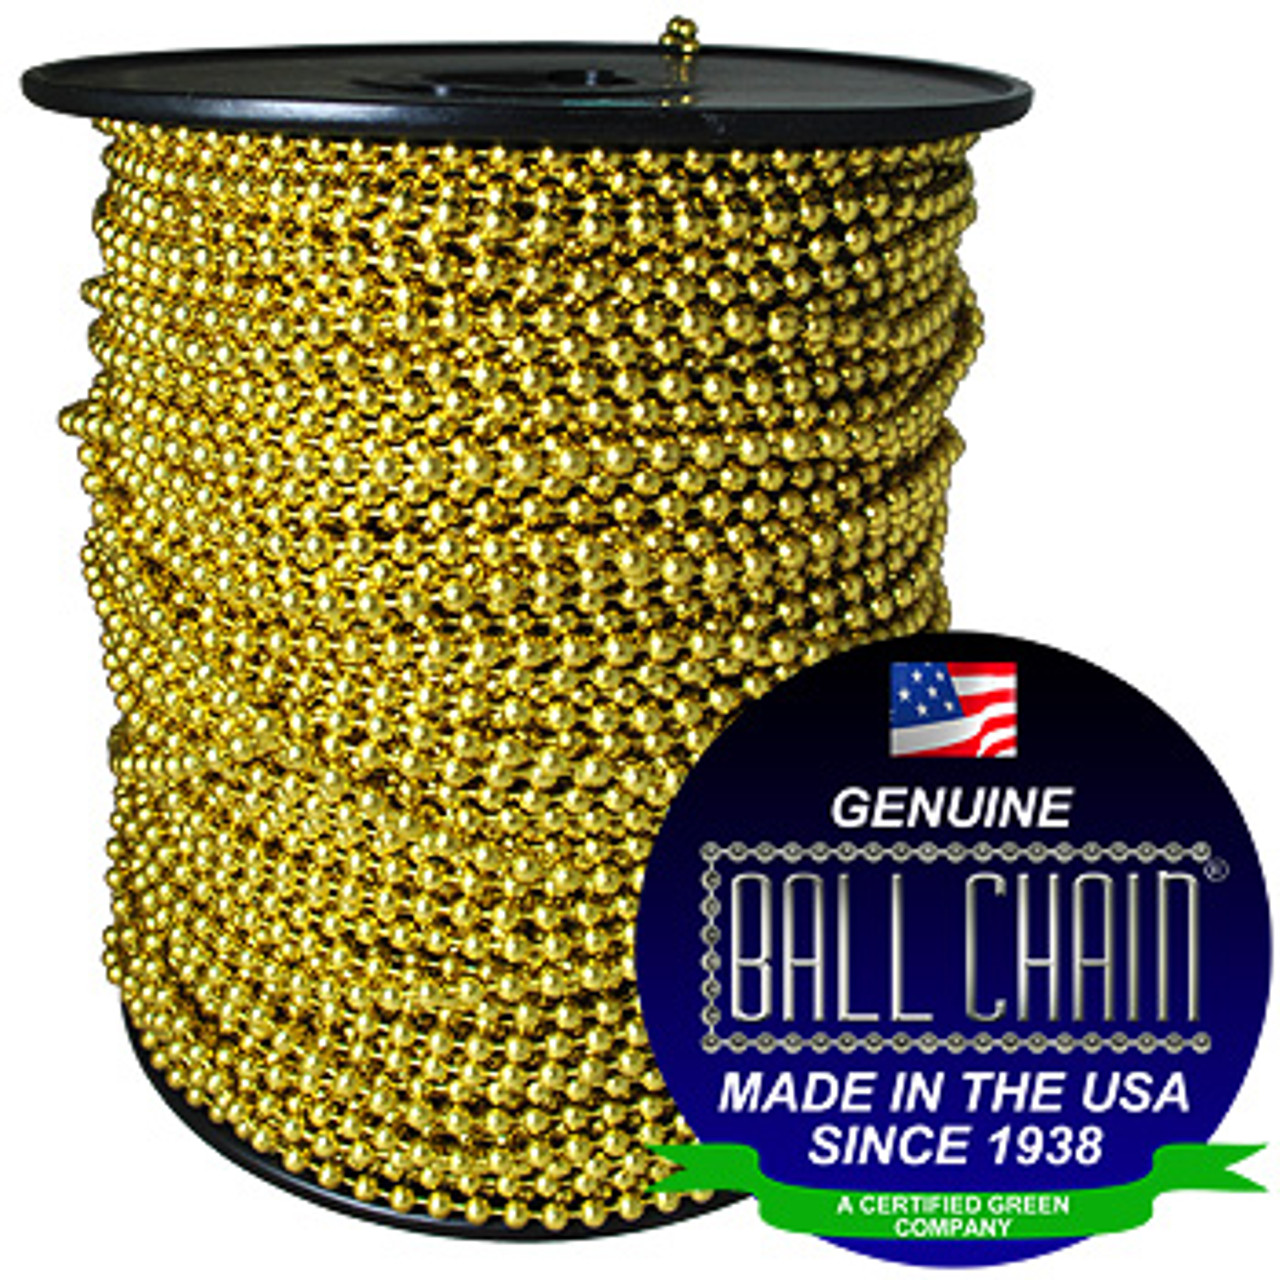 """#8 Yellow Brass Ball Chain Spool with Ball Chain Manufacturing Seal stating """"Made in the usa since 1938"""" and """"certified green business""""."""